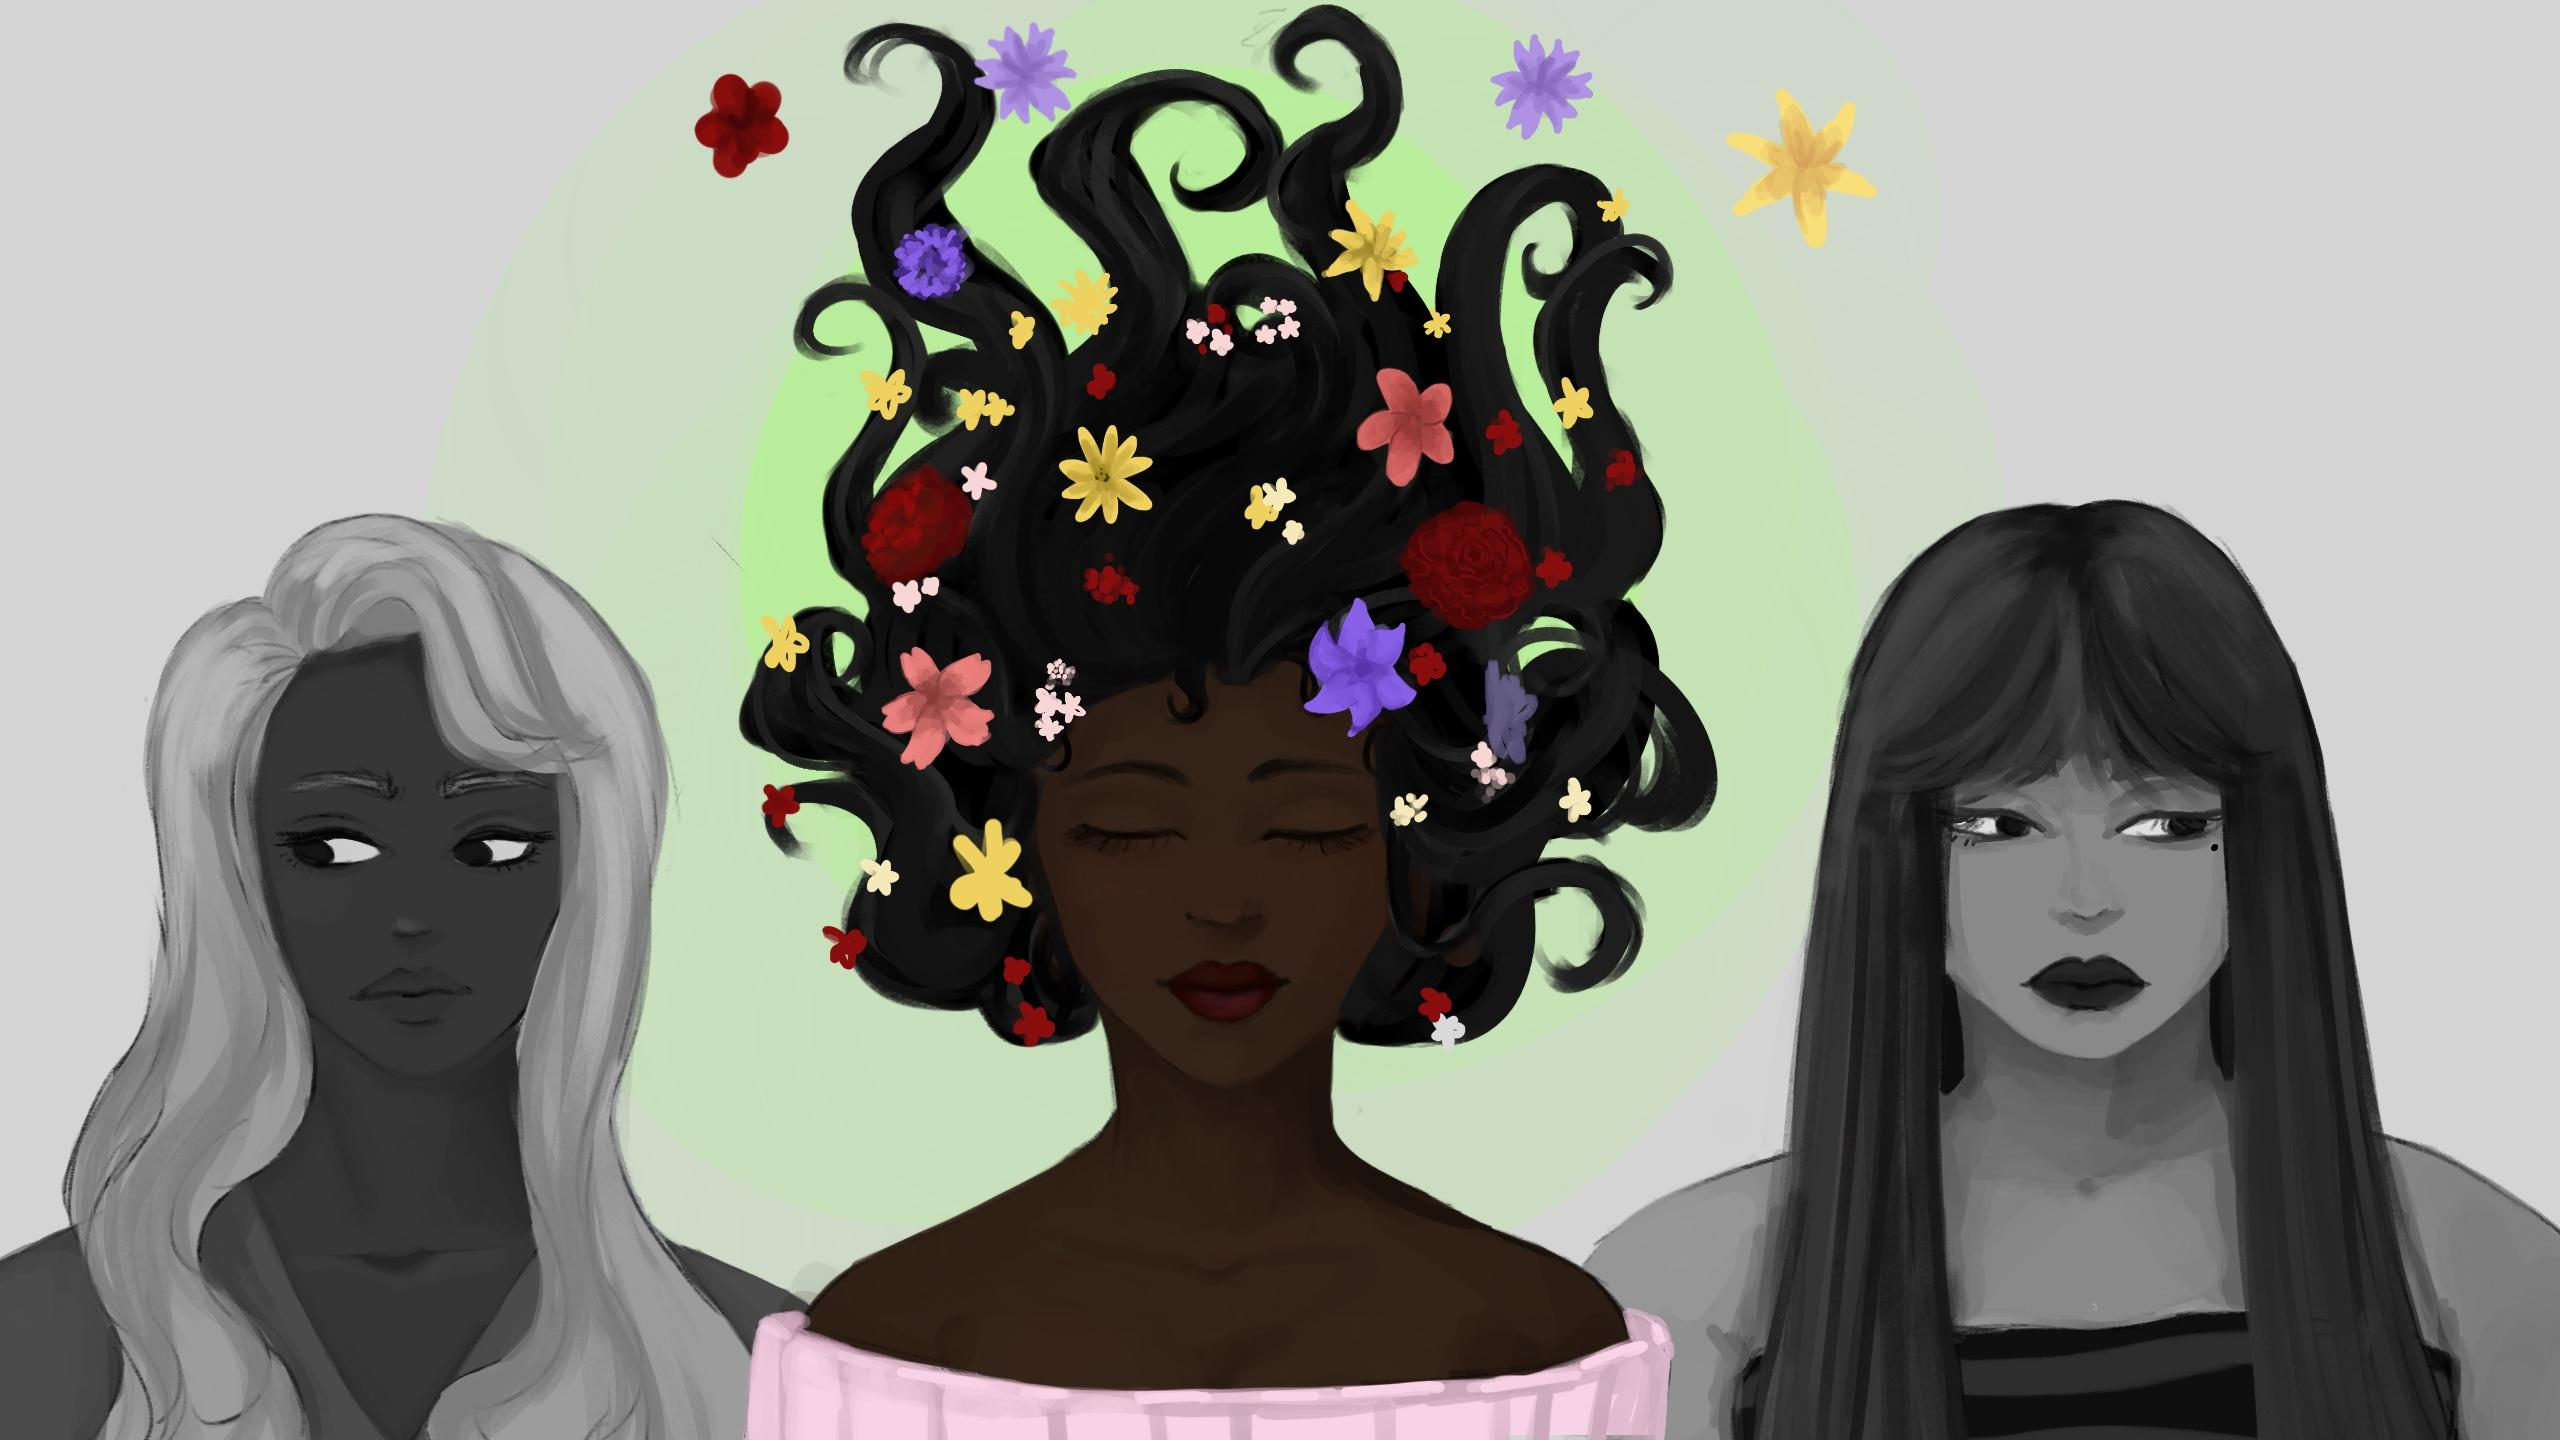 Three black women lined up. Woman in the centre is coloured, and hair is flowing around her with flowers on it. Two women on her left and right are both in black and white.